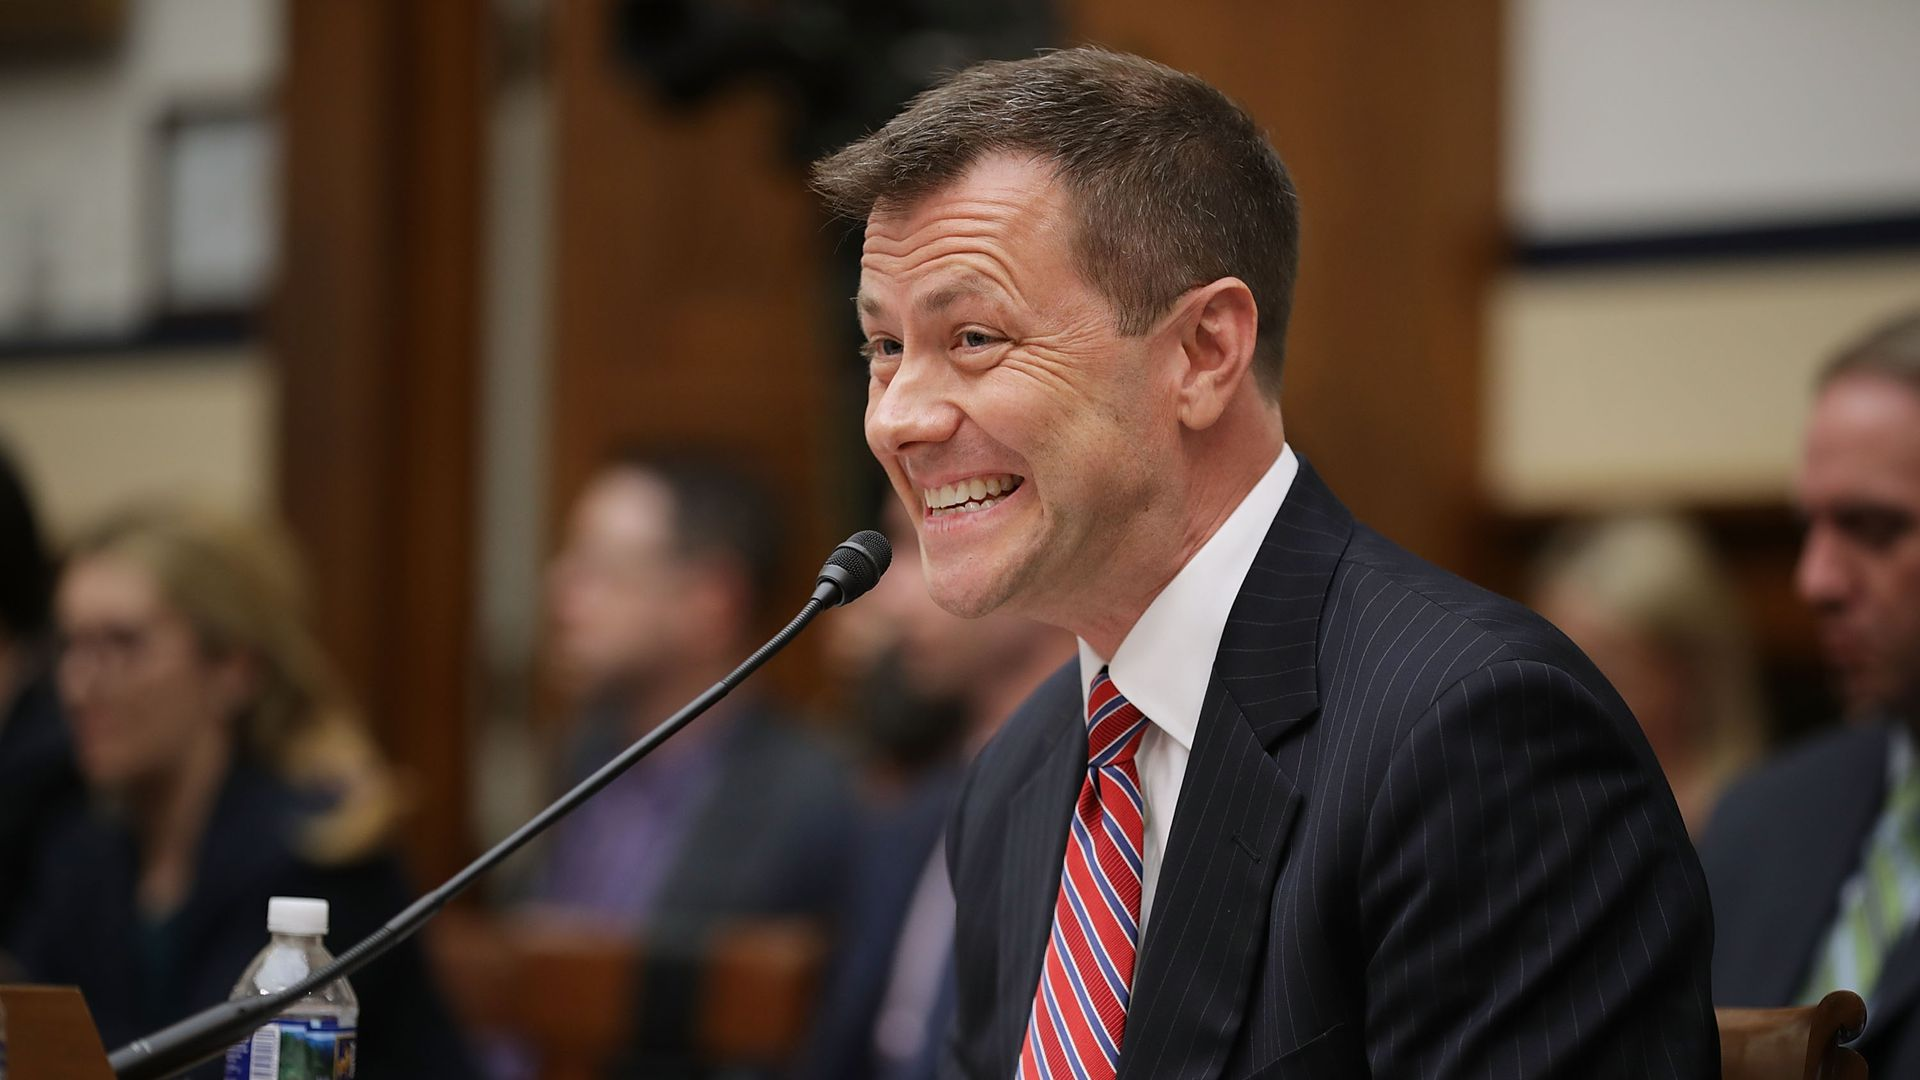 Peter Strzok testifying to Congress grimaces into a microphone